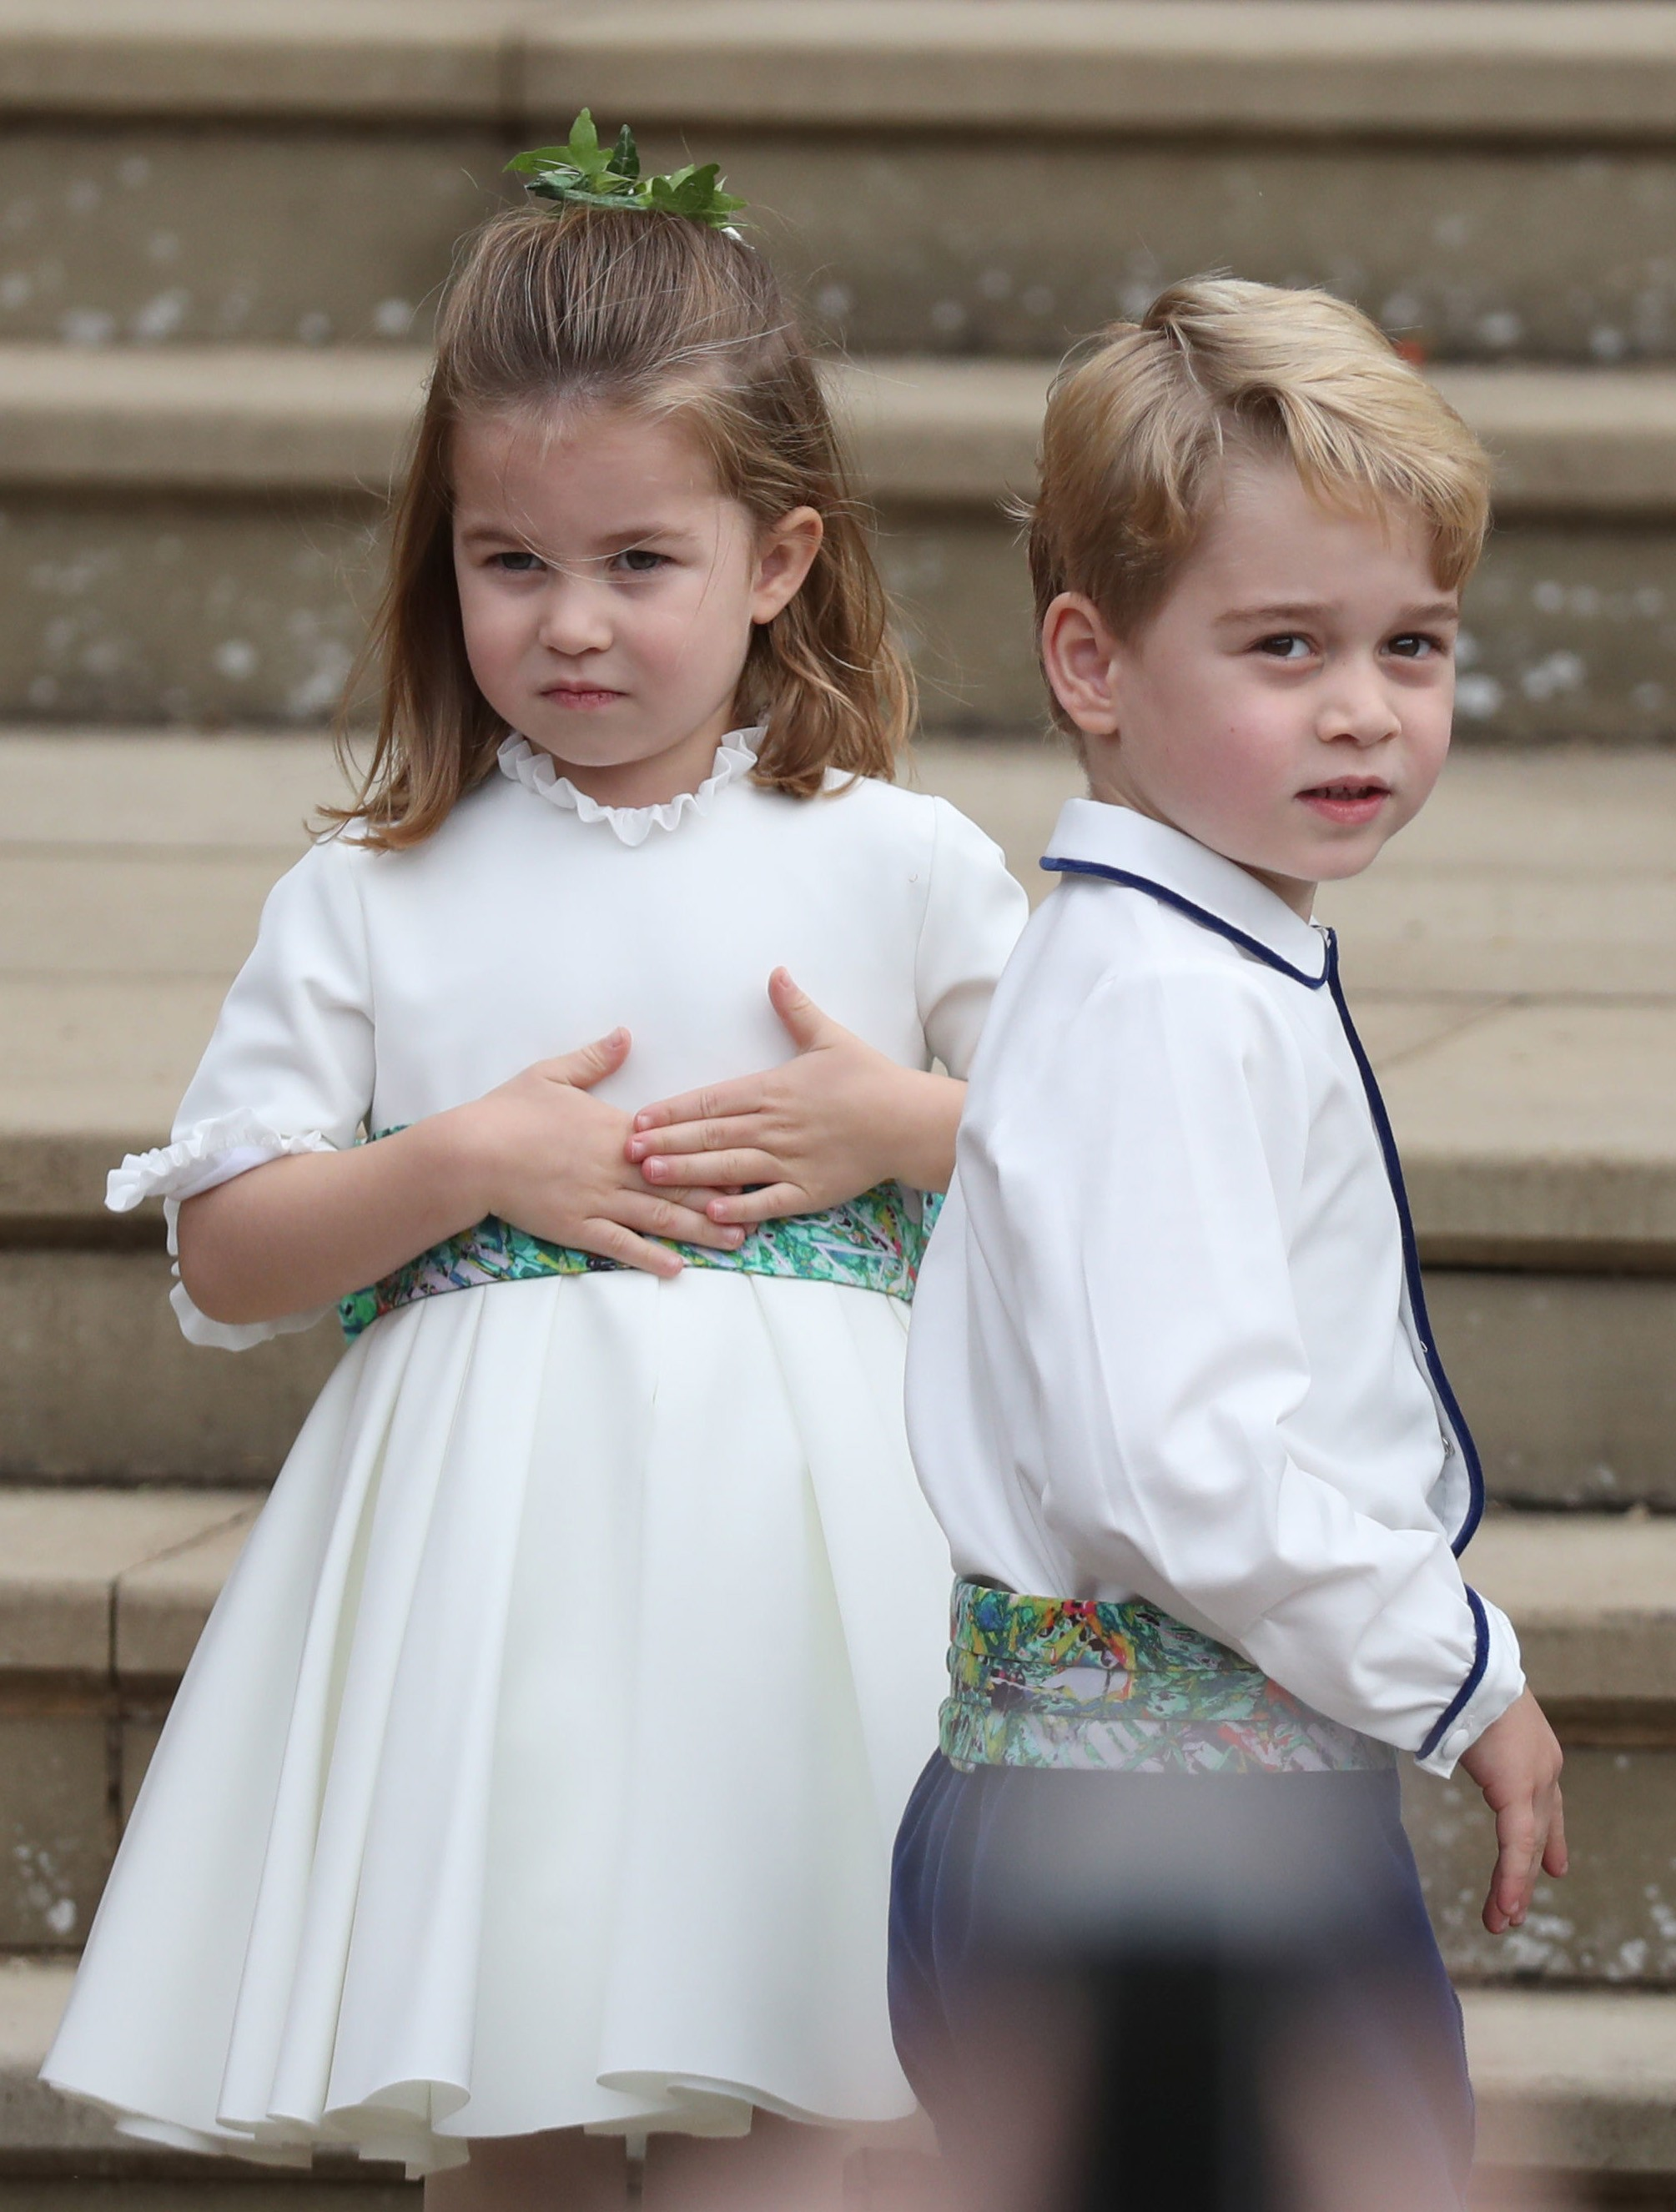 O Príncipe George e a Príncesa Charlotte, filhos do Príncipe William com a duquesa Kate Middleton (Foto: Getty Images)